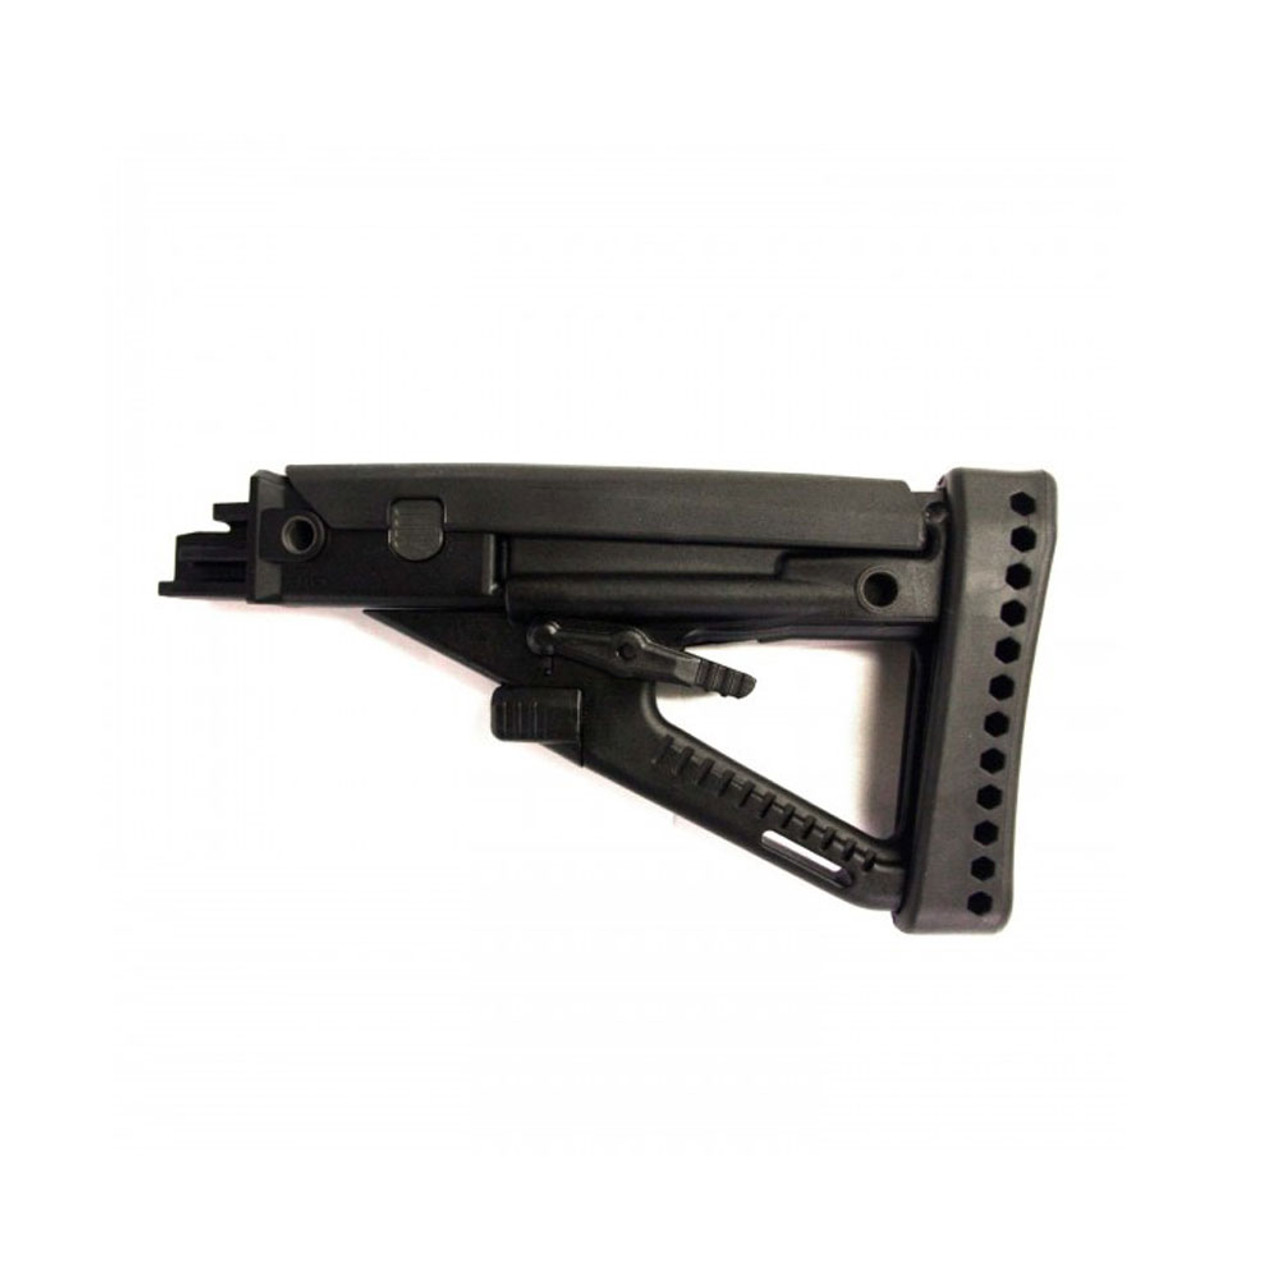 PROMAG Archangel Opfor AK-Series Black Adjustable Stock with Recoil Pad  (AA123)